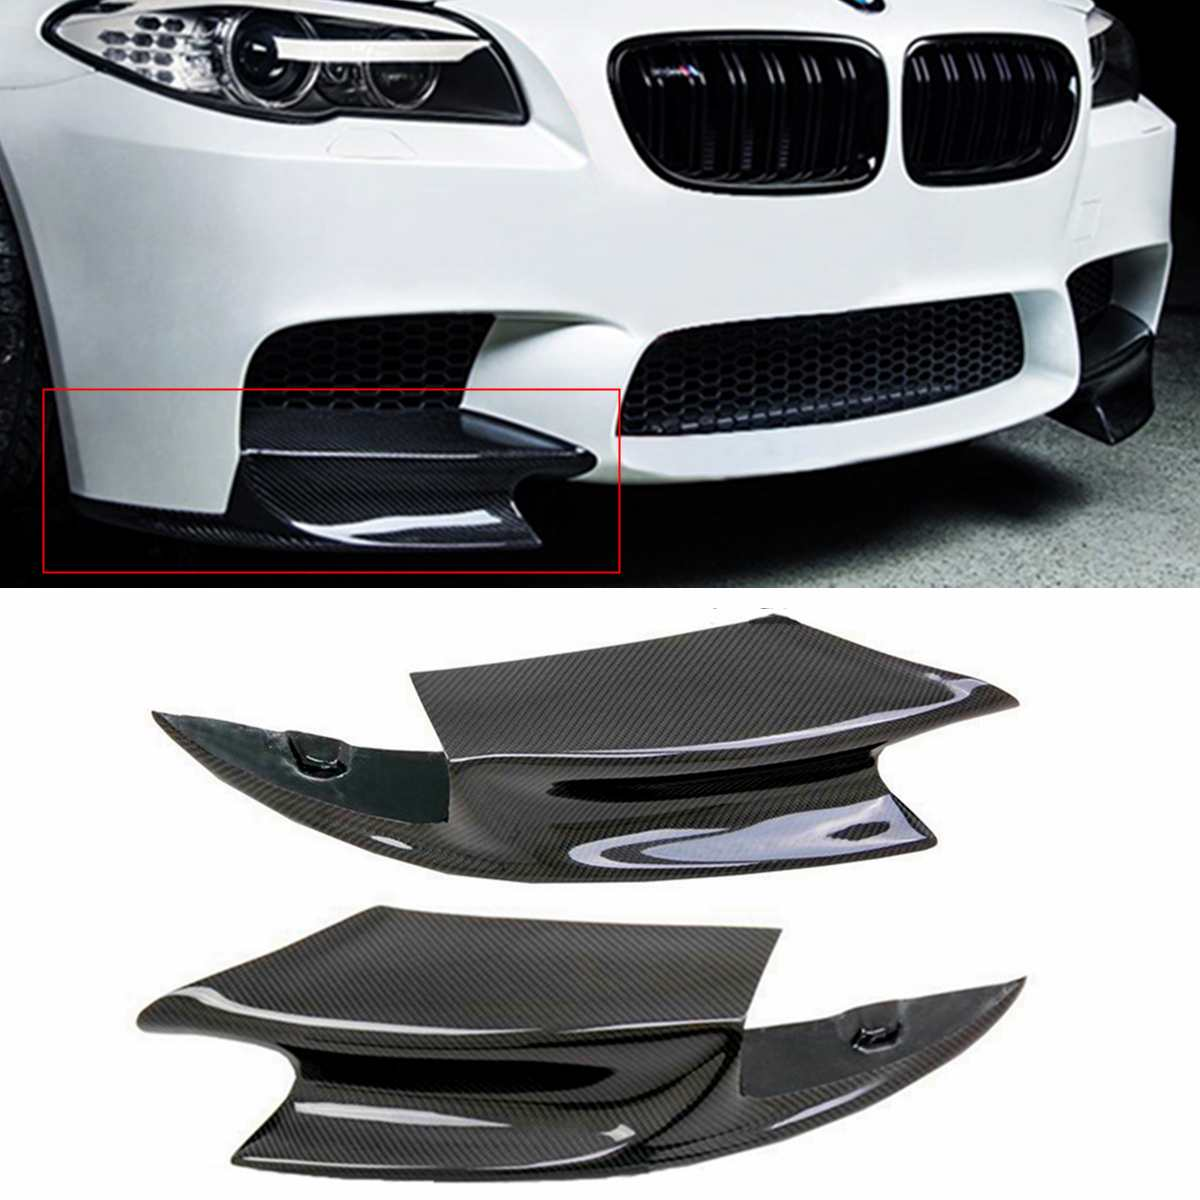 1 Pair Real Carbon Fiber Front Bumper Splitter Lip Fin Air Knife Auto Body For BMW F10 M5 2012-2016 R Style Diffuse Splitters1 Pair Real Carbon Fiber Front Bumper Splitter Lip Fin Air Knife Auto Body For BMW F10 M5 2012-2016 R Style Diffuse Splitters